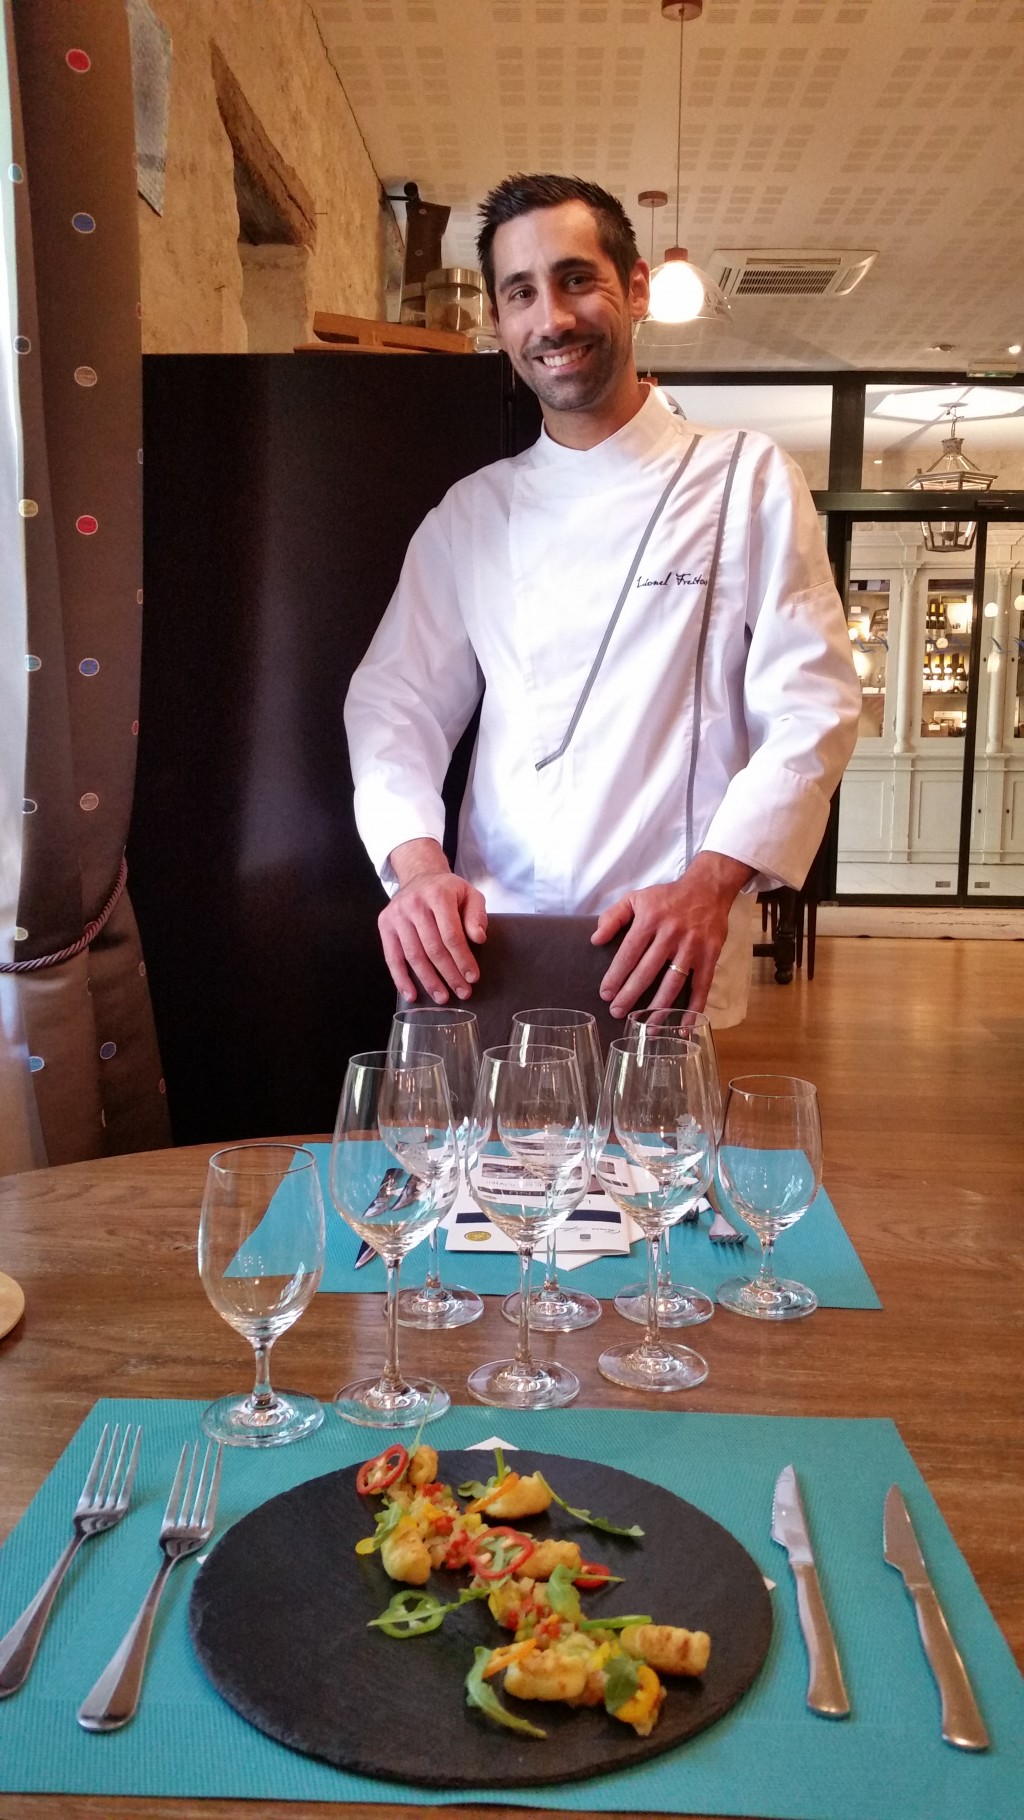 A new chef in our kitchen olivier leflaive - La table d olivier leflaive puligny montrachet ...